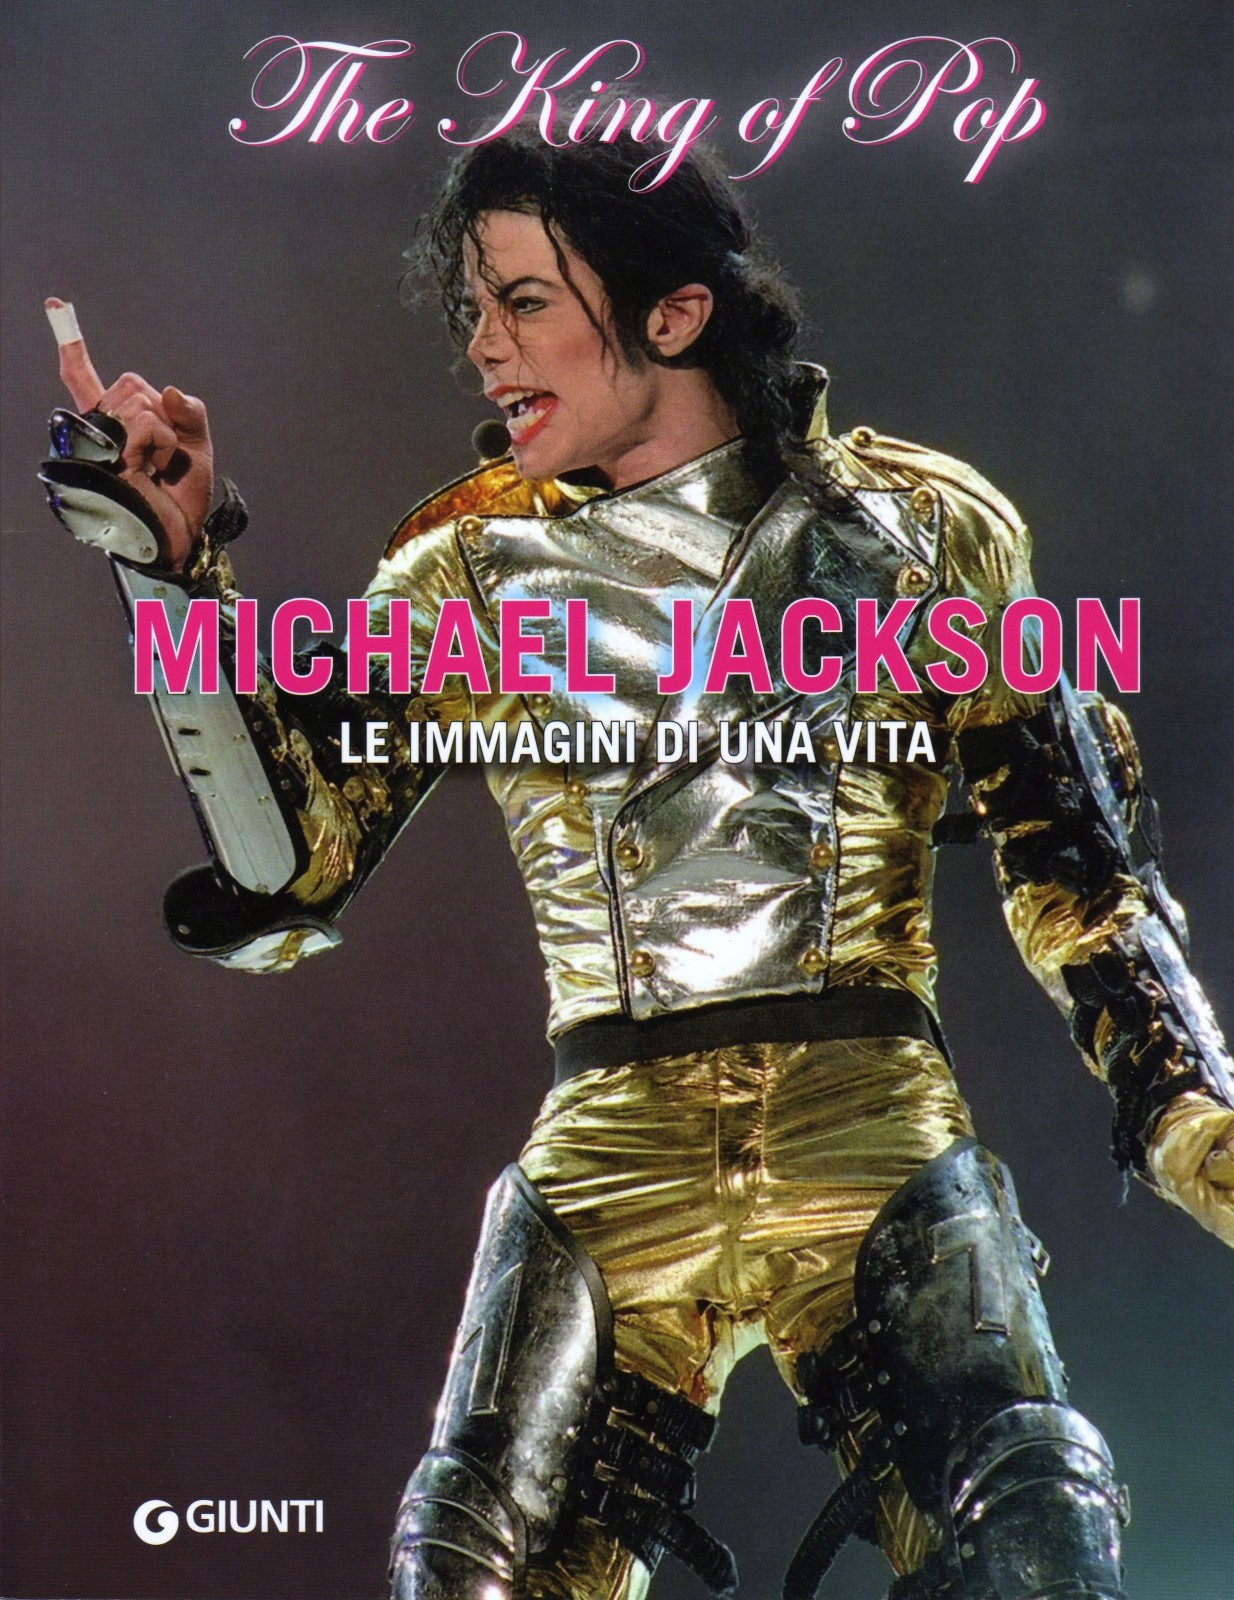 Michael Jackson. The king of pop